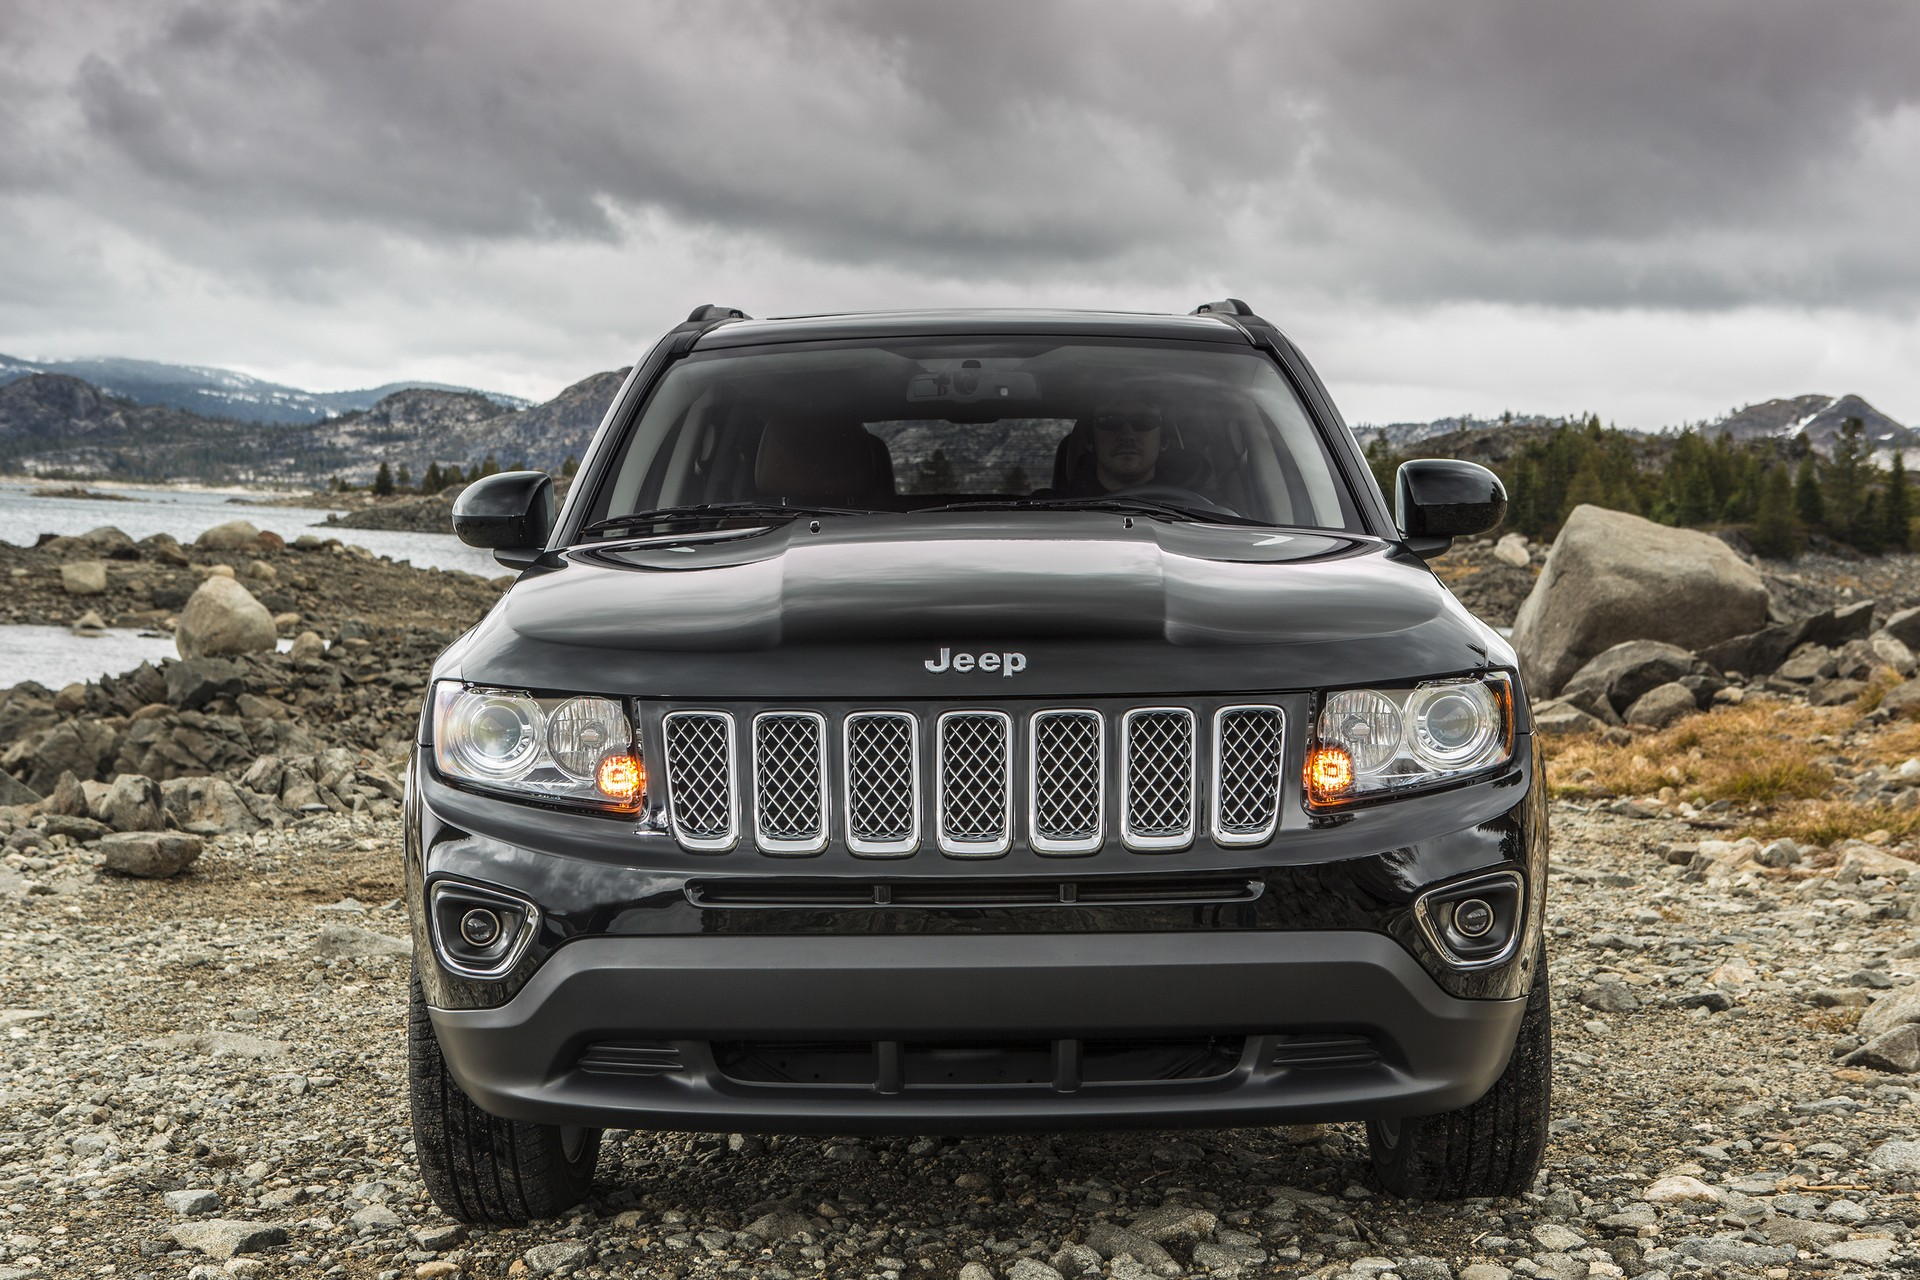 2015 Jeep Compass U0026 Patriot Recalled For Power Steering Leak, Fire Hazard:  93,000 Vehicles Affected